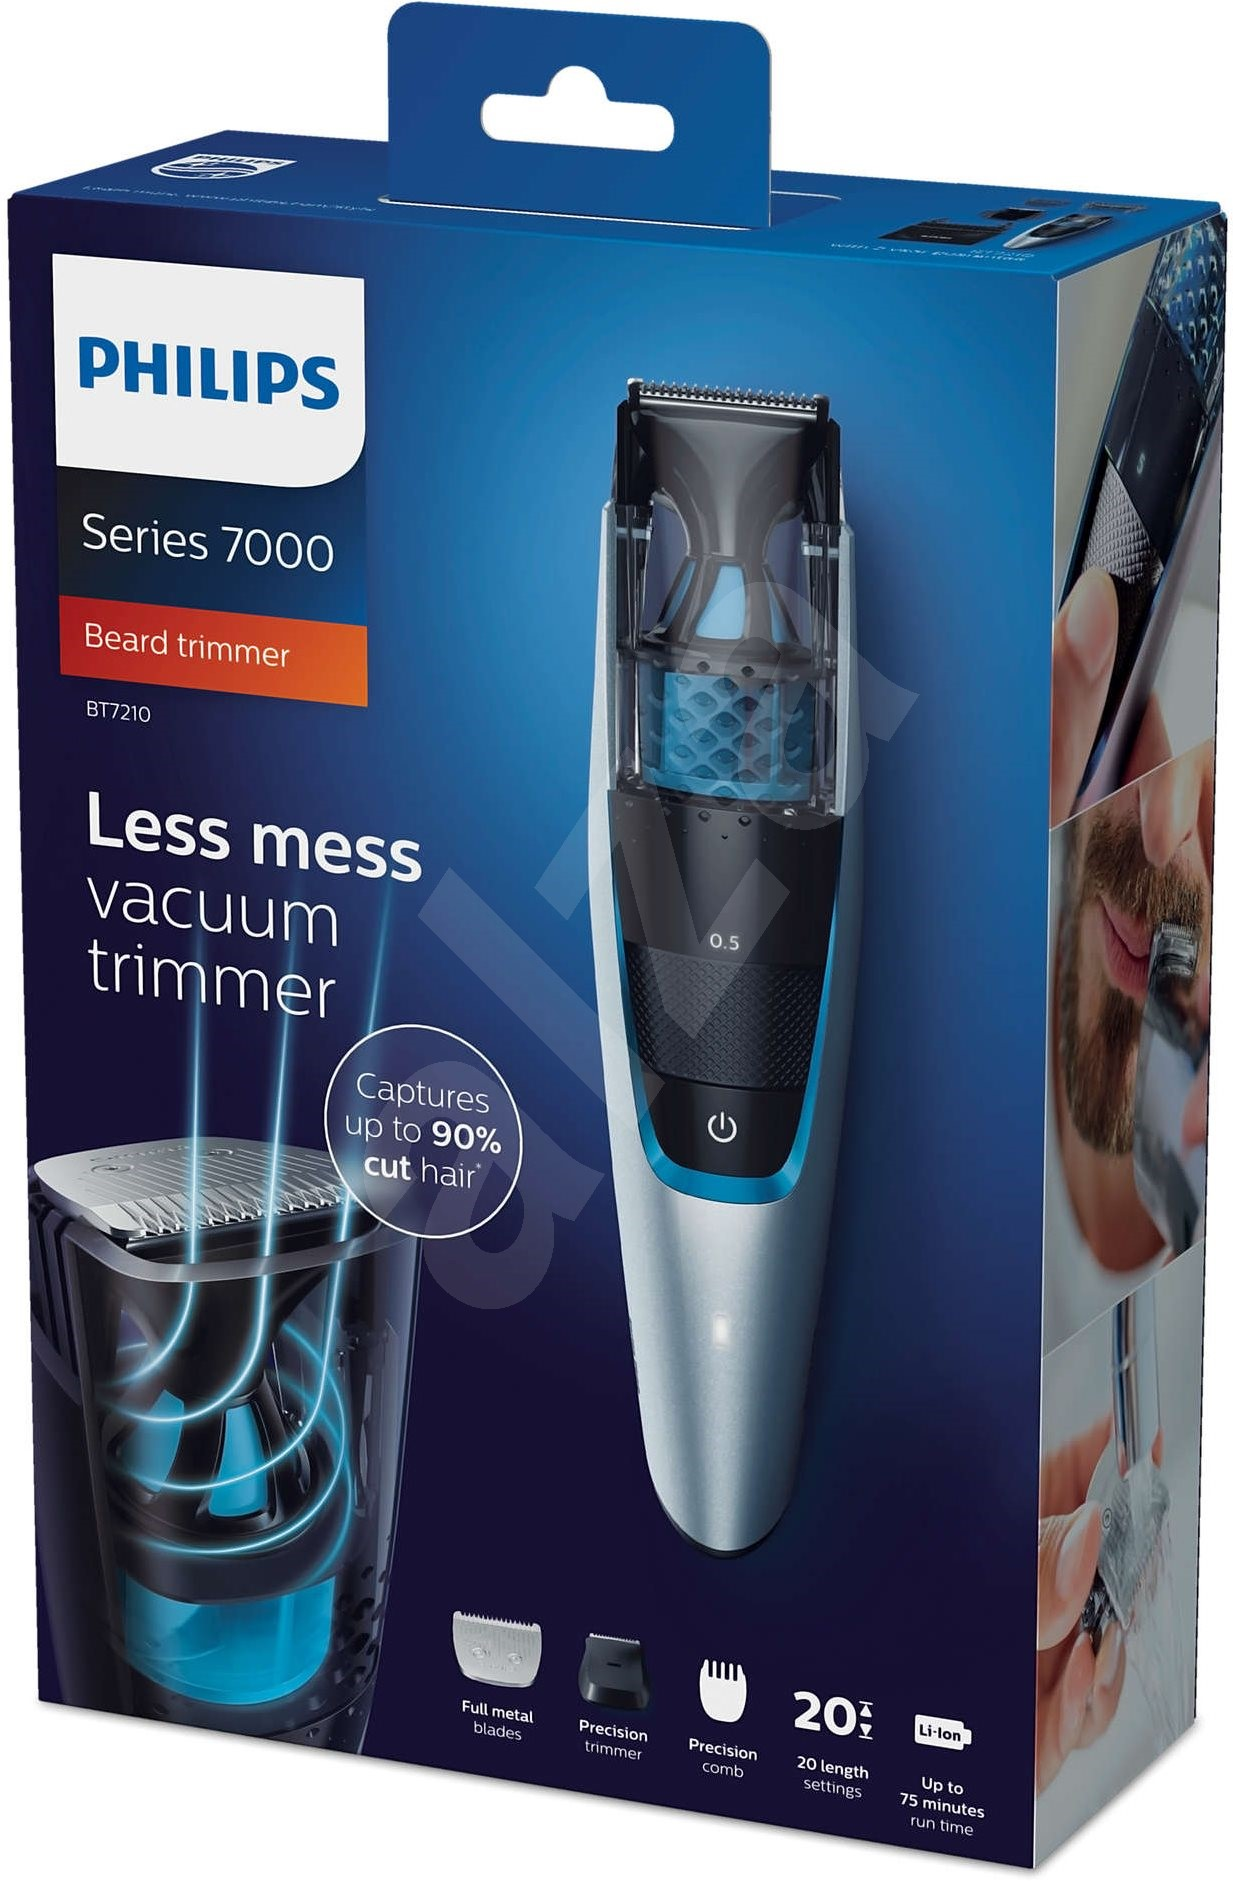 philips beardtrimmer series 7000 vacuum beard trimmer bt7210 15 hair and beard trimmer. Black Bedroom Furniture Sets. Home Design Ideas